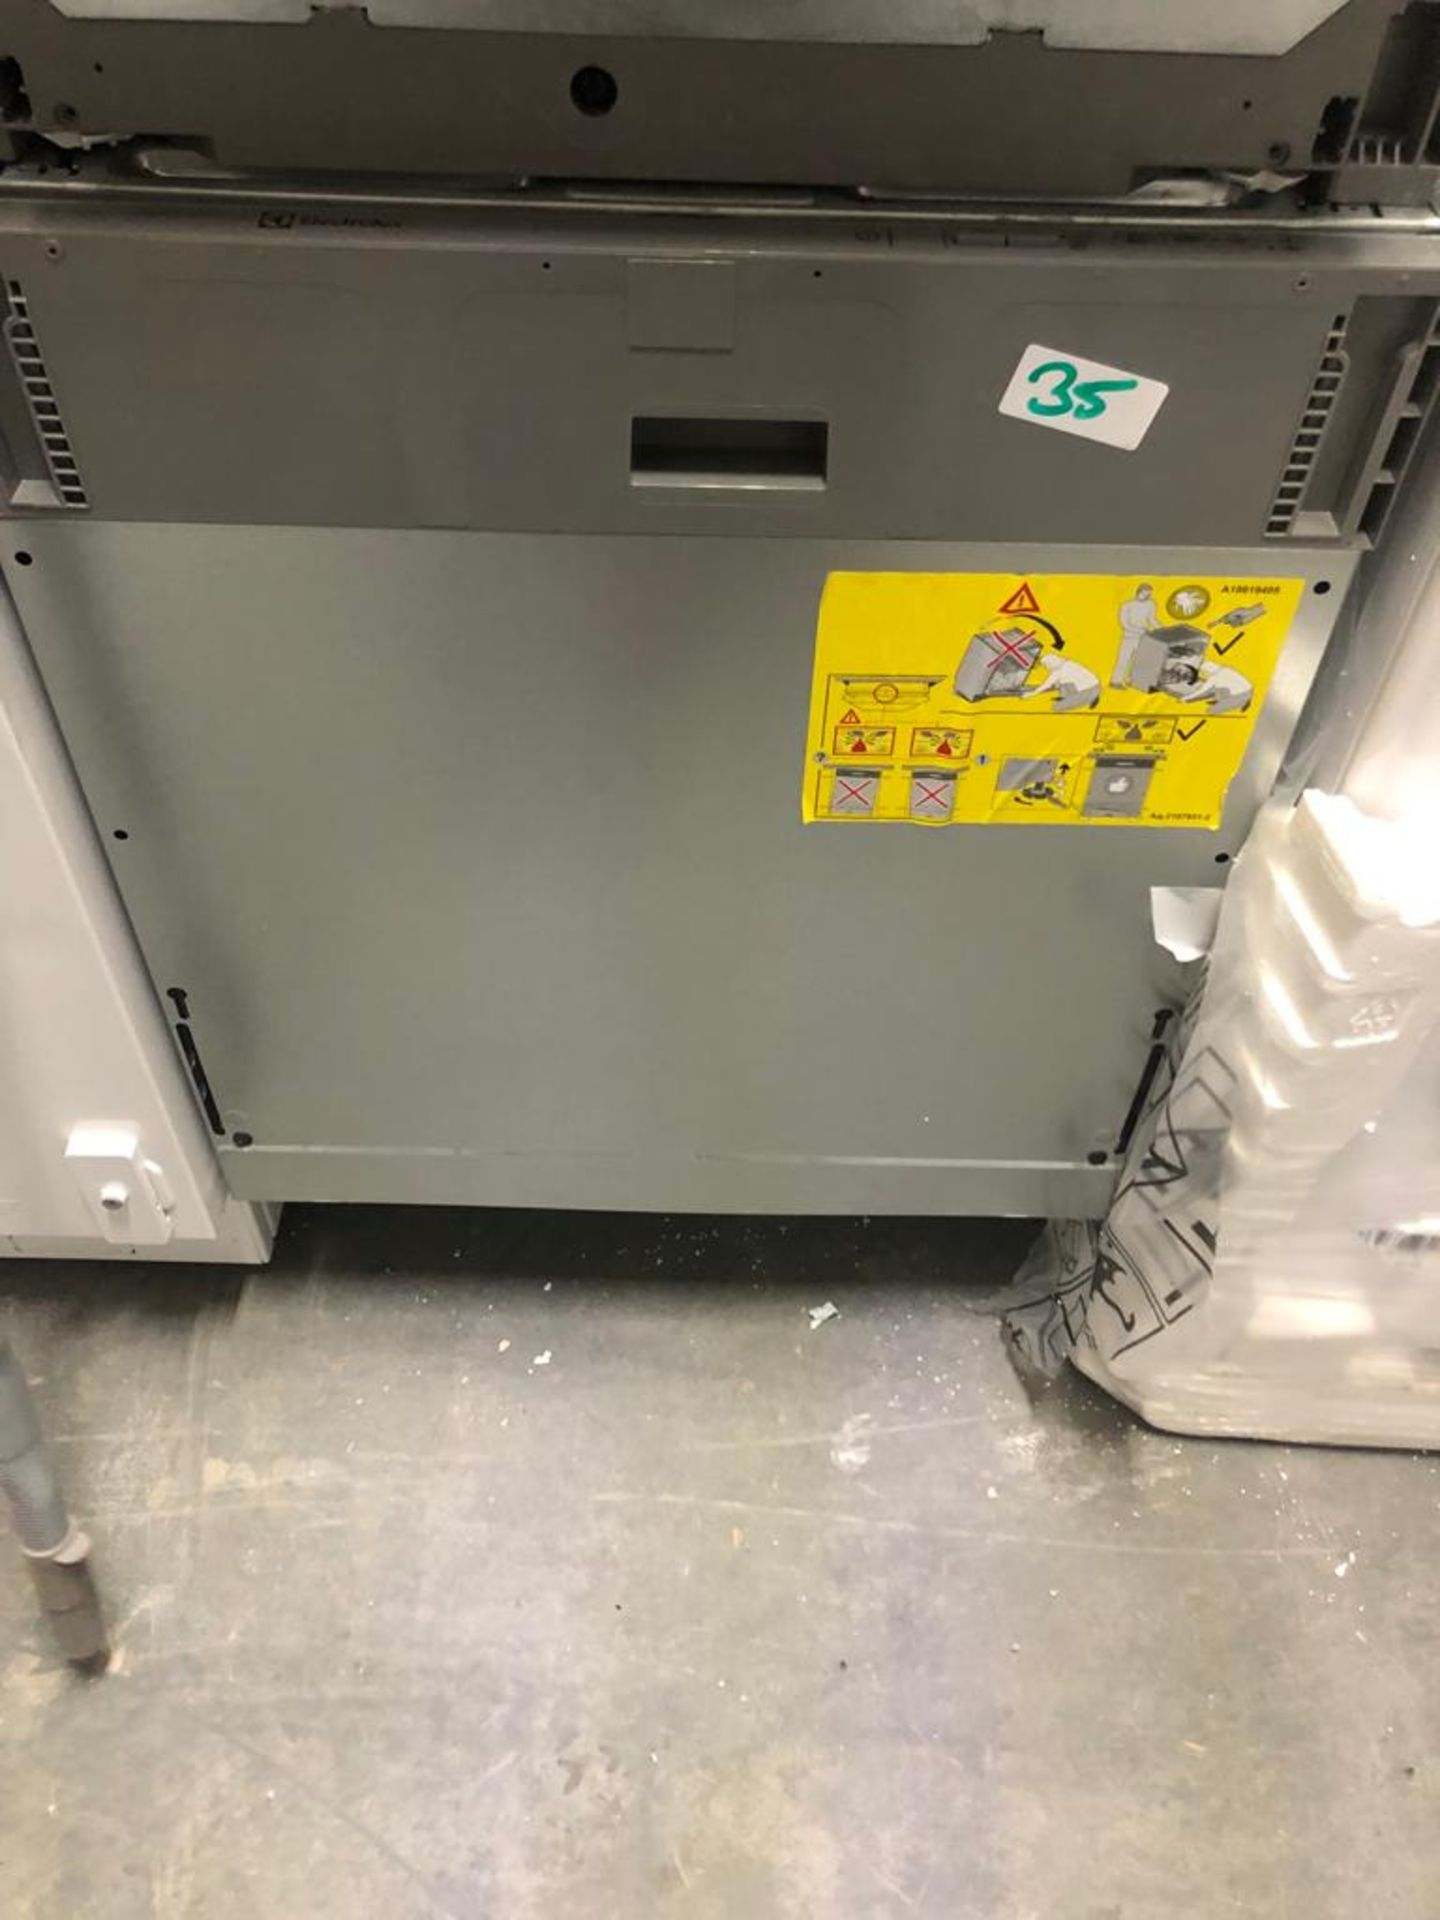 NEW/GRADED AND UNPACKAGED Electrolux KEAF7100L 60cm wide Fully Integrated Dishwasher (Ex demo)